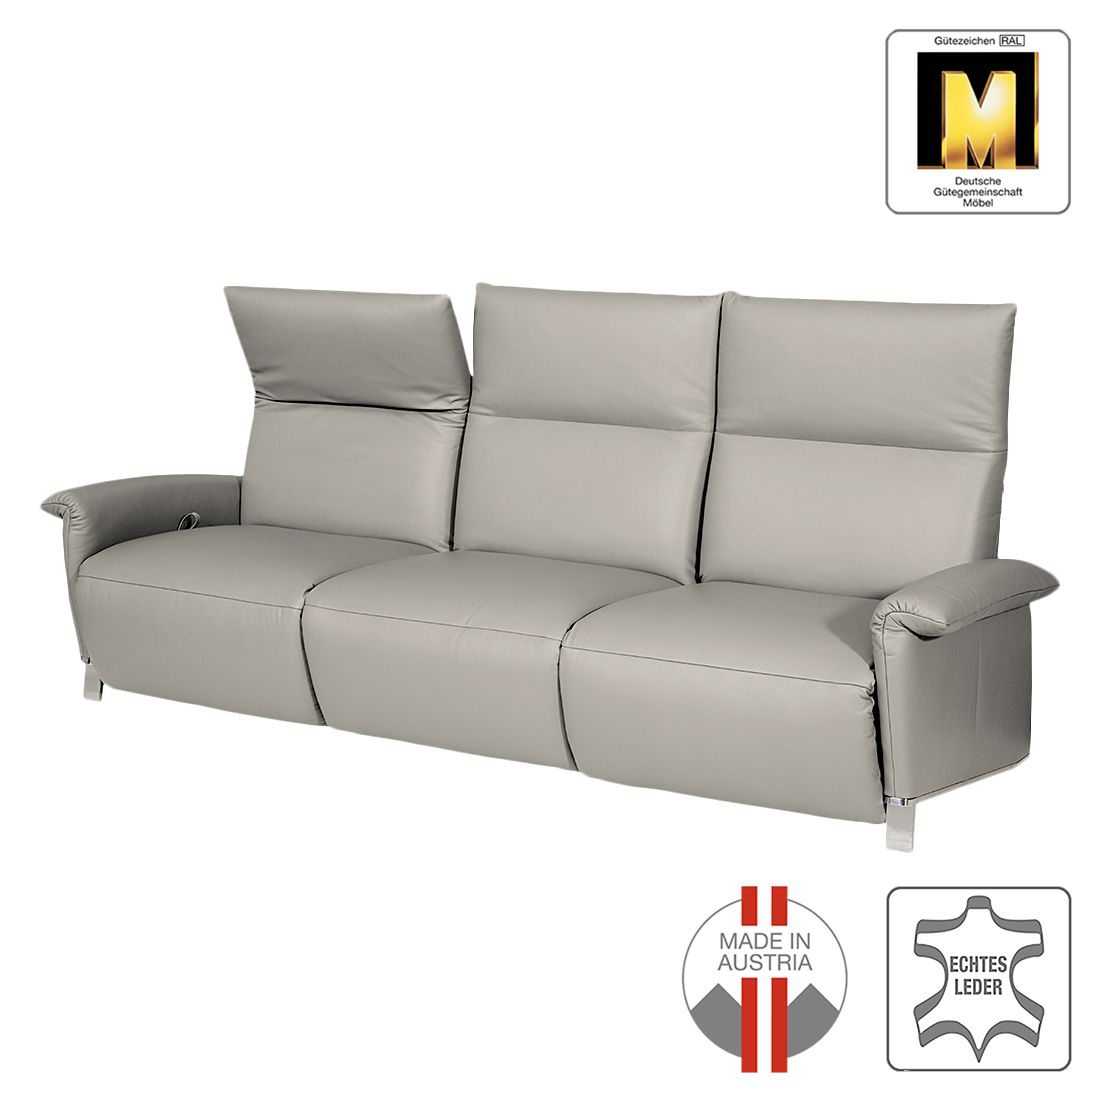 sofa barcelona 3 sitzer echtleder keine funktion steingrau ada premium g nstig kaufen. Black Bedroom Furniture Sets. Home Design Ideas